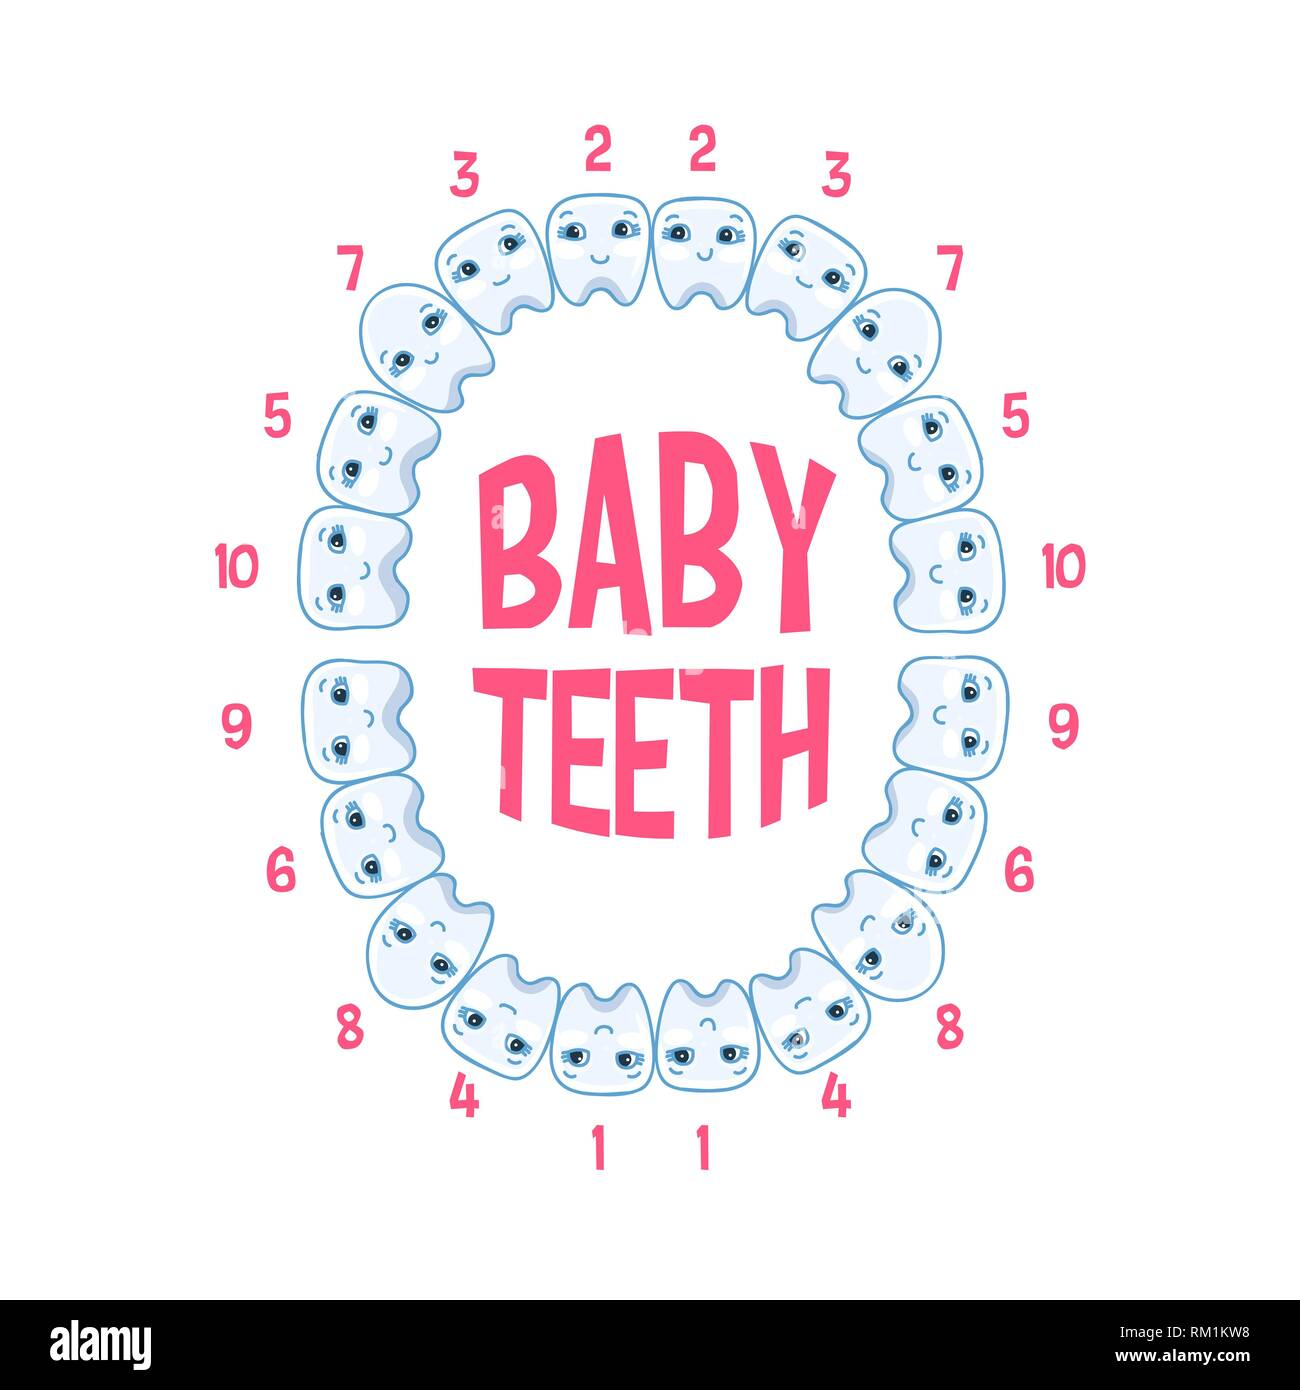 Baby teeth in a child, teeth infographics. Vector illustration of pediatric dentistry Stock Vector